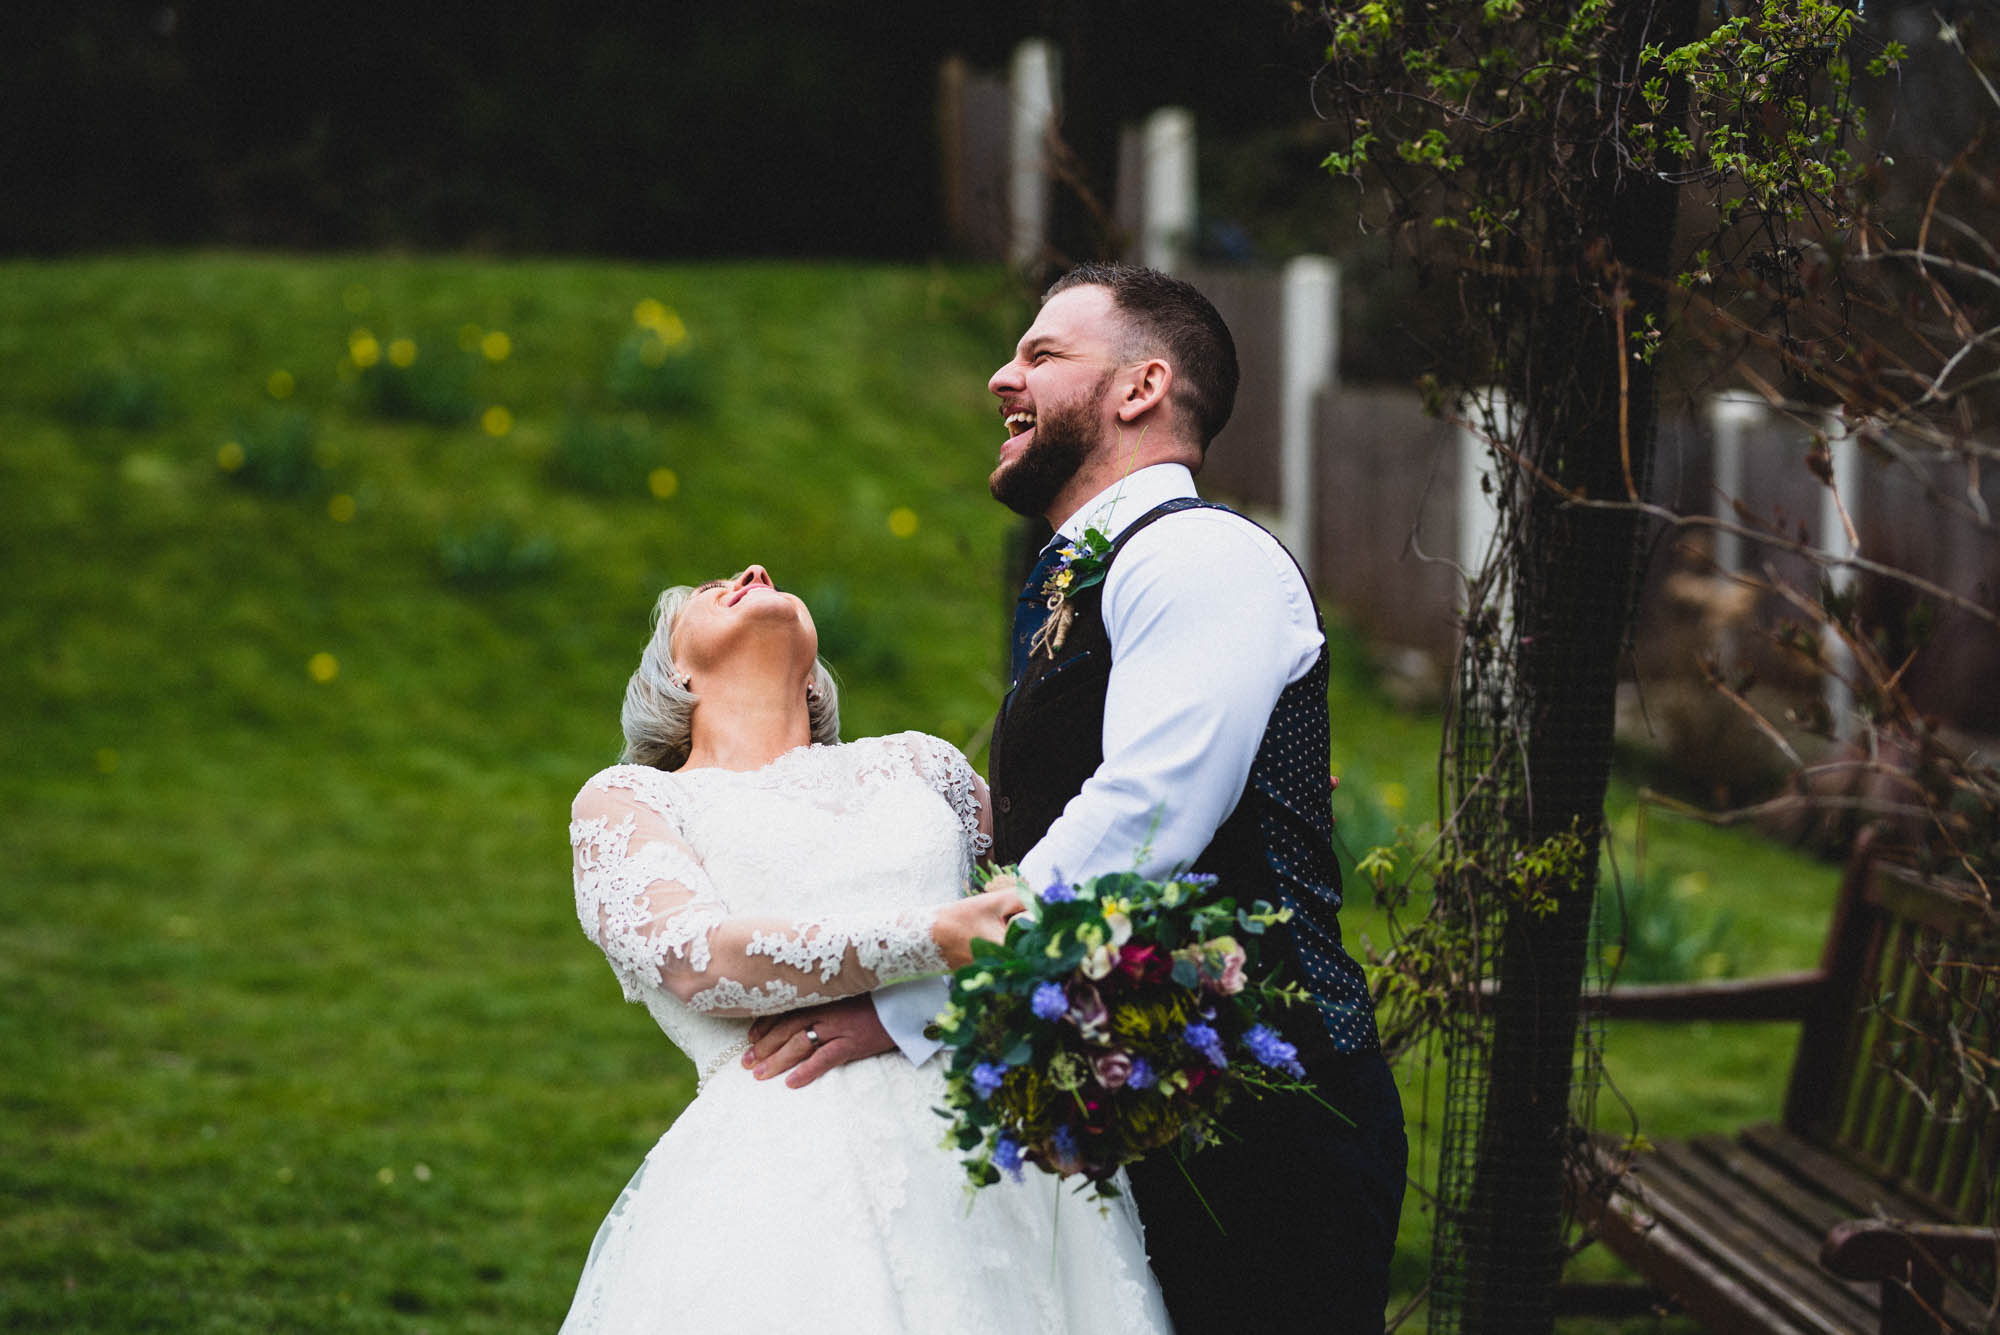 Charlotte & Lee's Bright and Colourful Spring Wedding in Sheffield